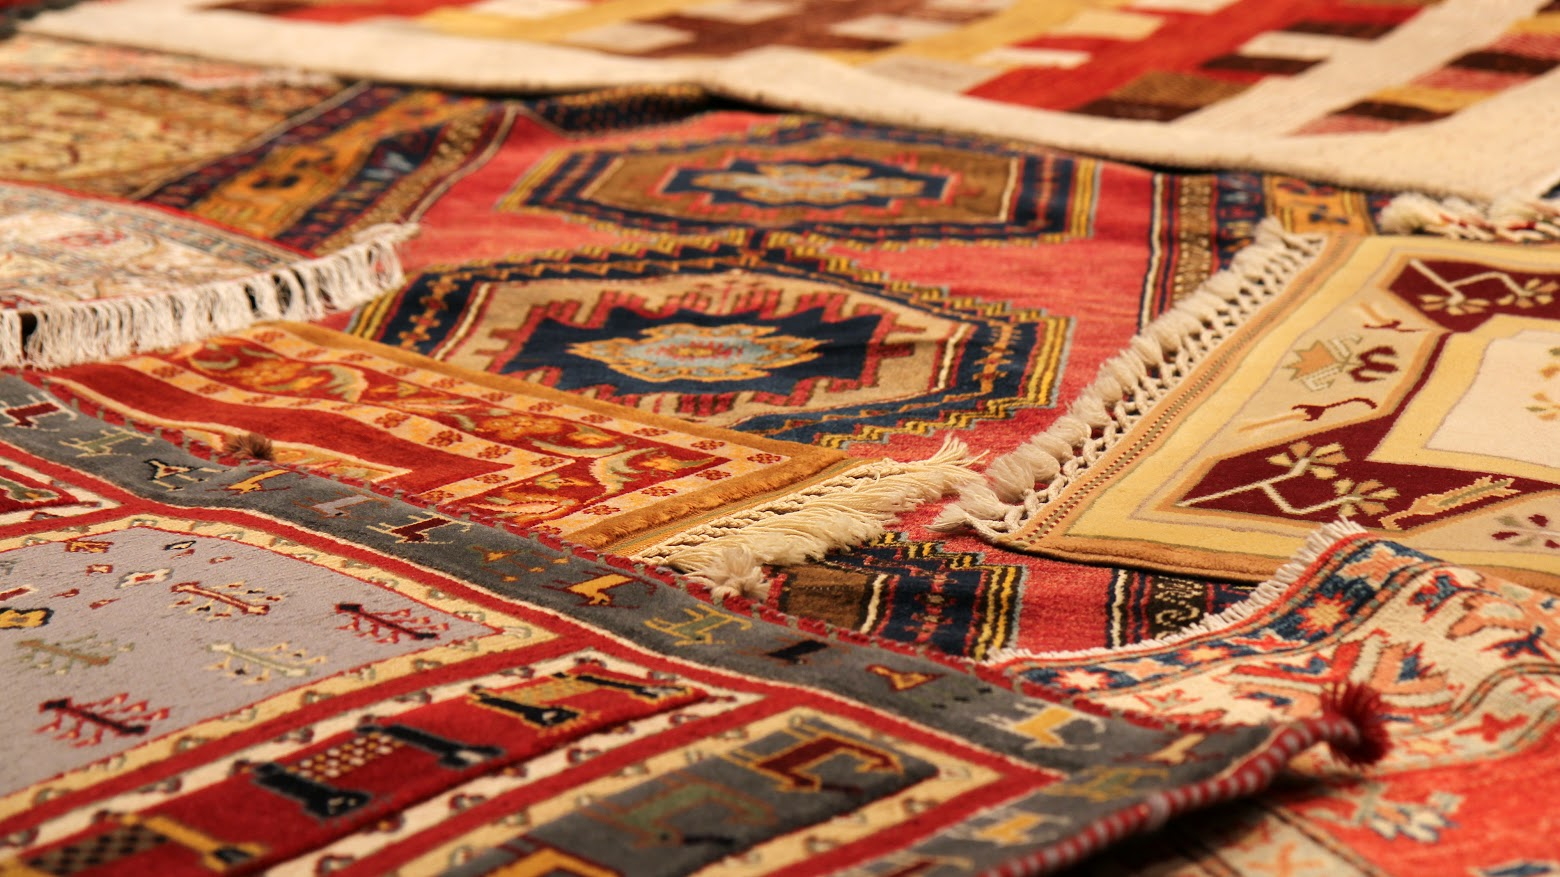 Hand-Knotted Oriental Rugs and Storage